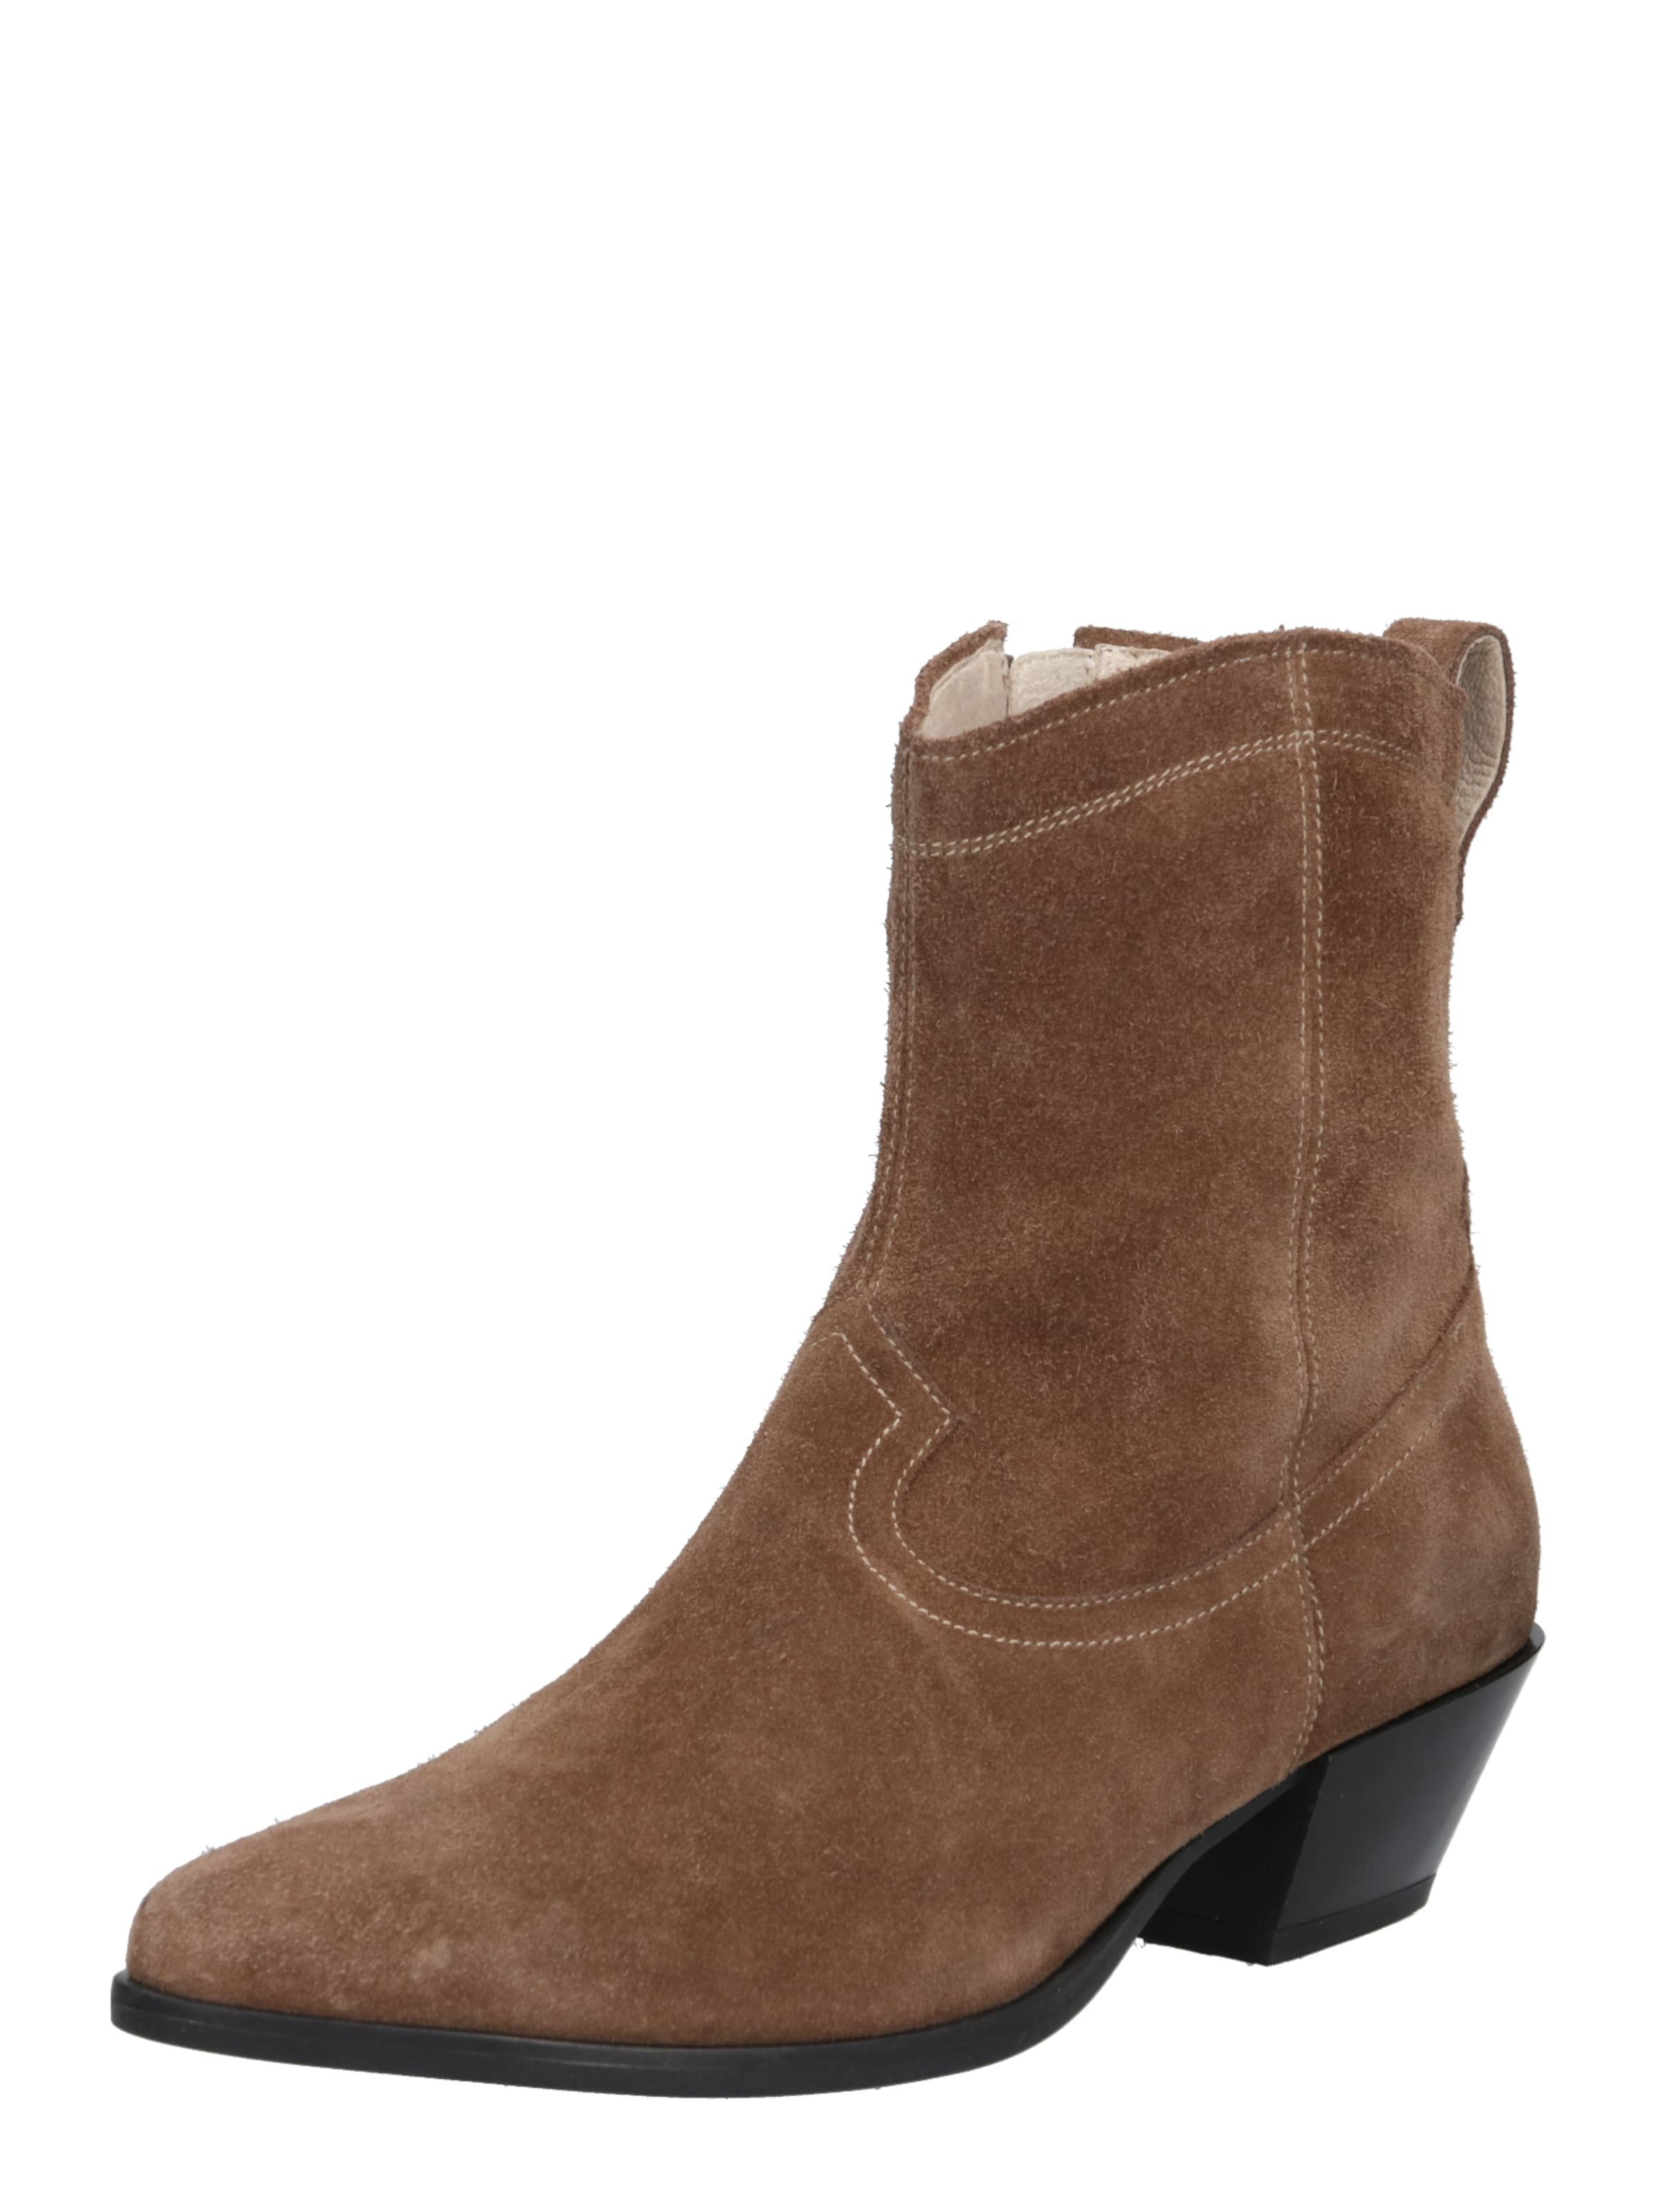 'emily' In Taupe Shoemakers Vagabond Cowboystiefel CBxeQdrWo